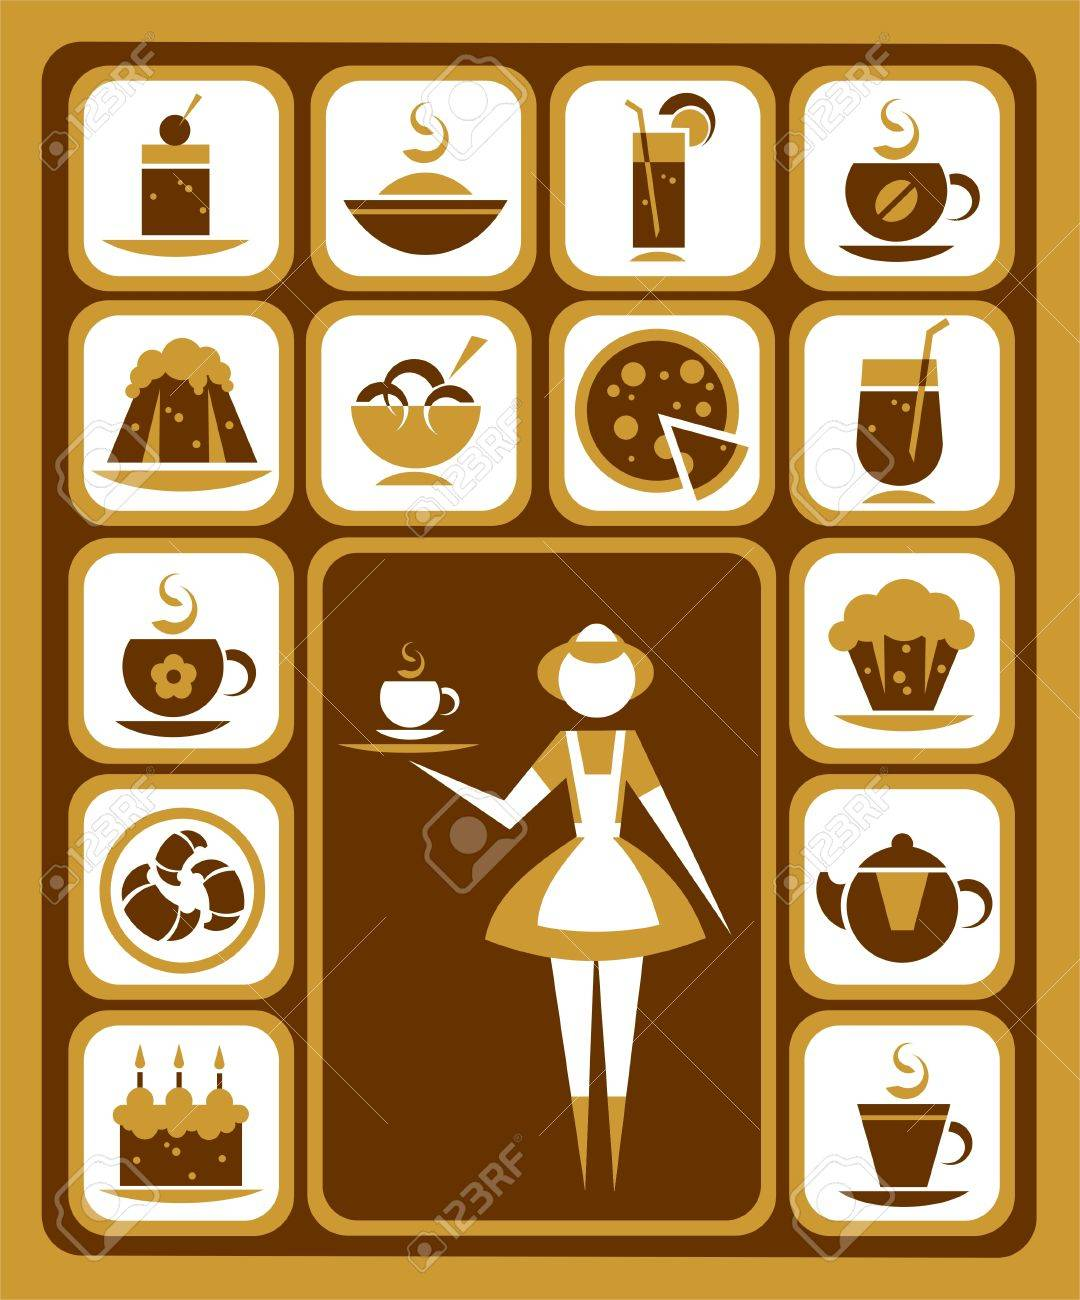 Nice stylized waitress and food icons set. Stock Vector - 5993002